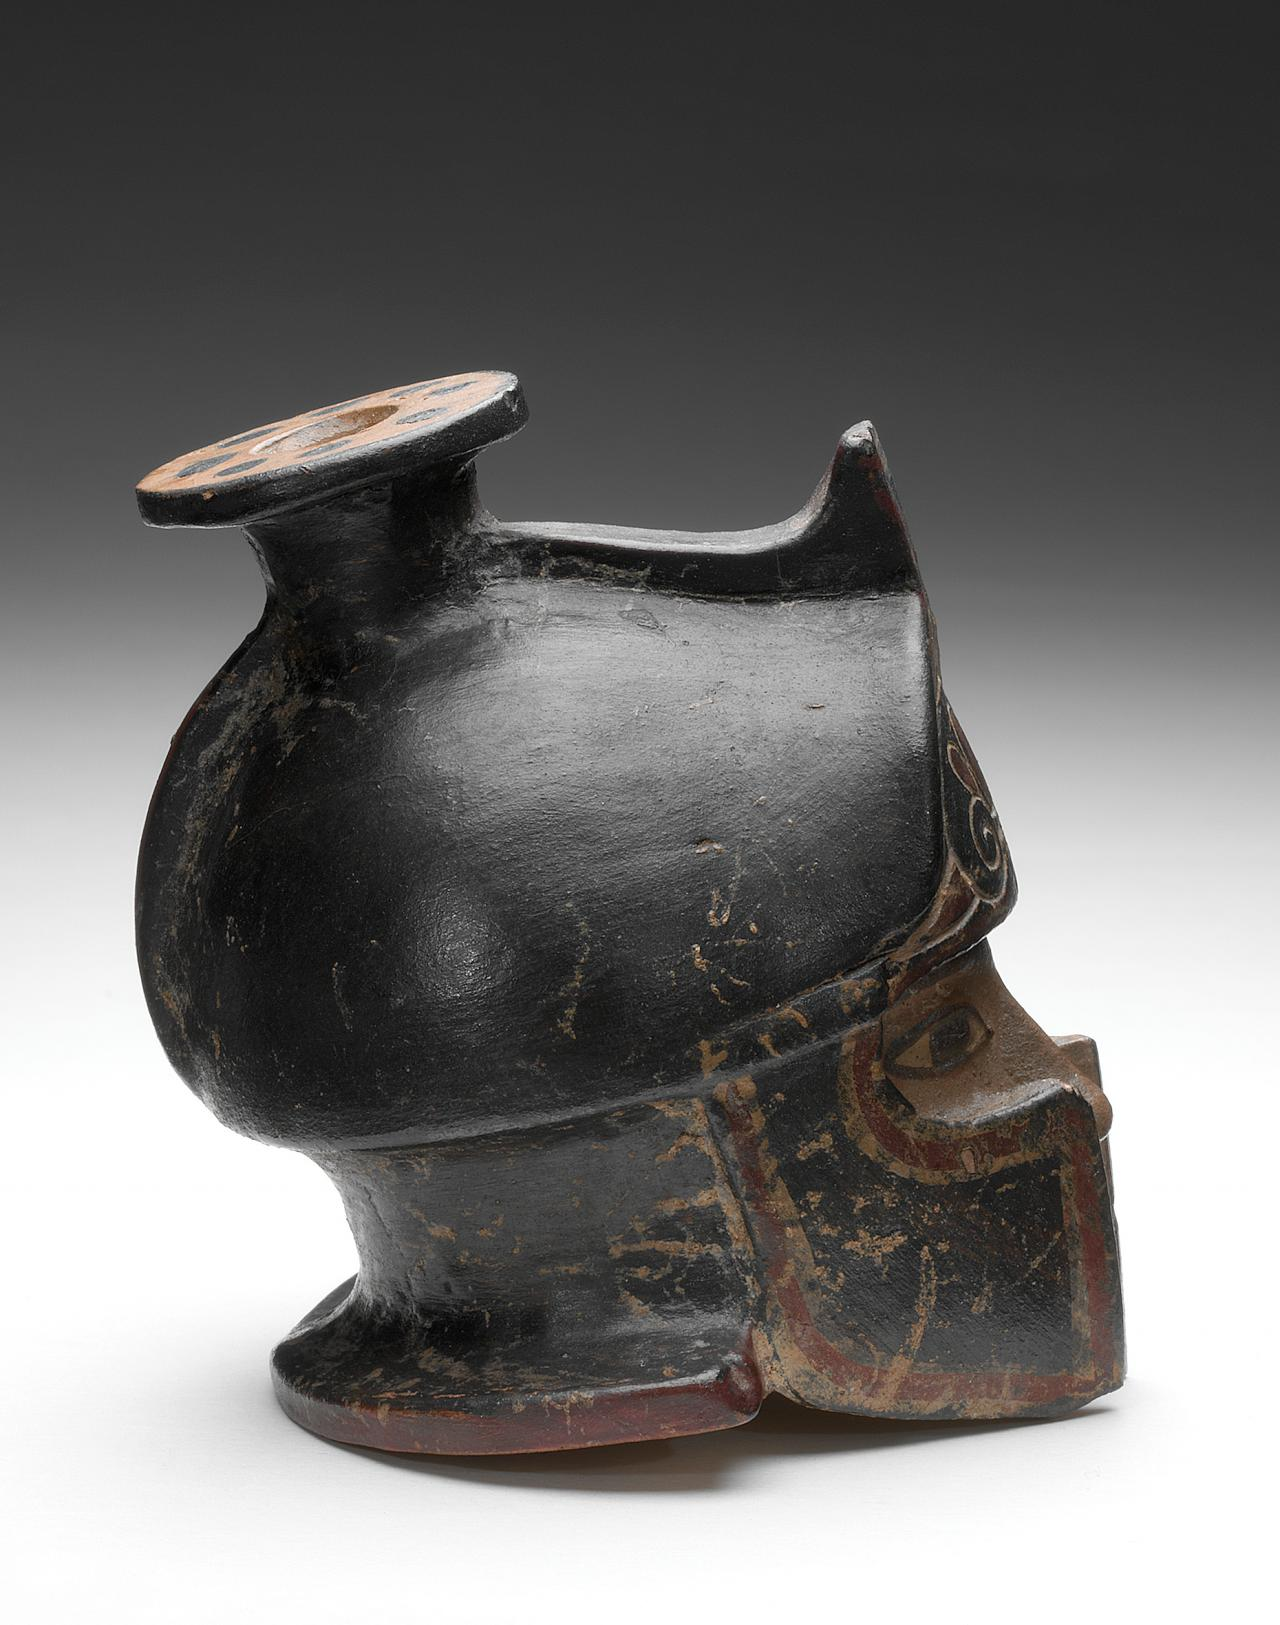 Three recently acquired greek vases ngv the earliest of such vases were sometimes thrown on the wheel and then modelled by hand however from c 600 onward for most of them two moulds were used reviewsmspy